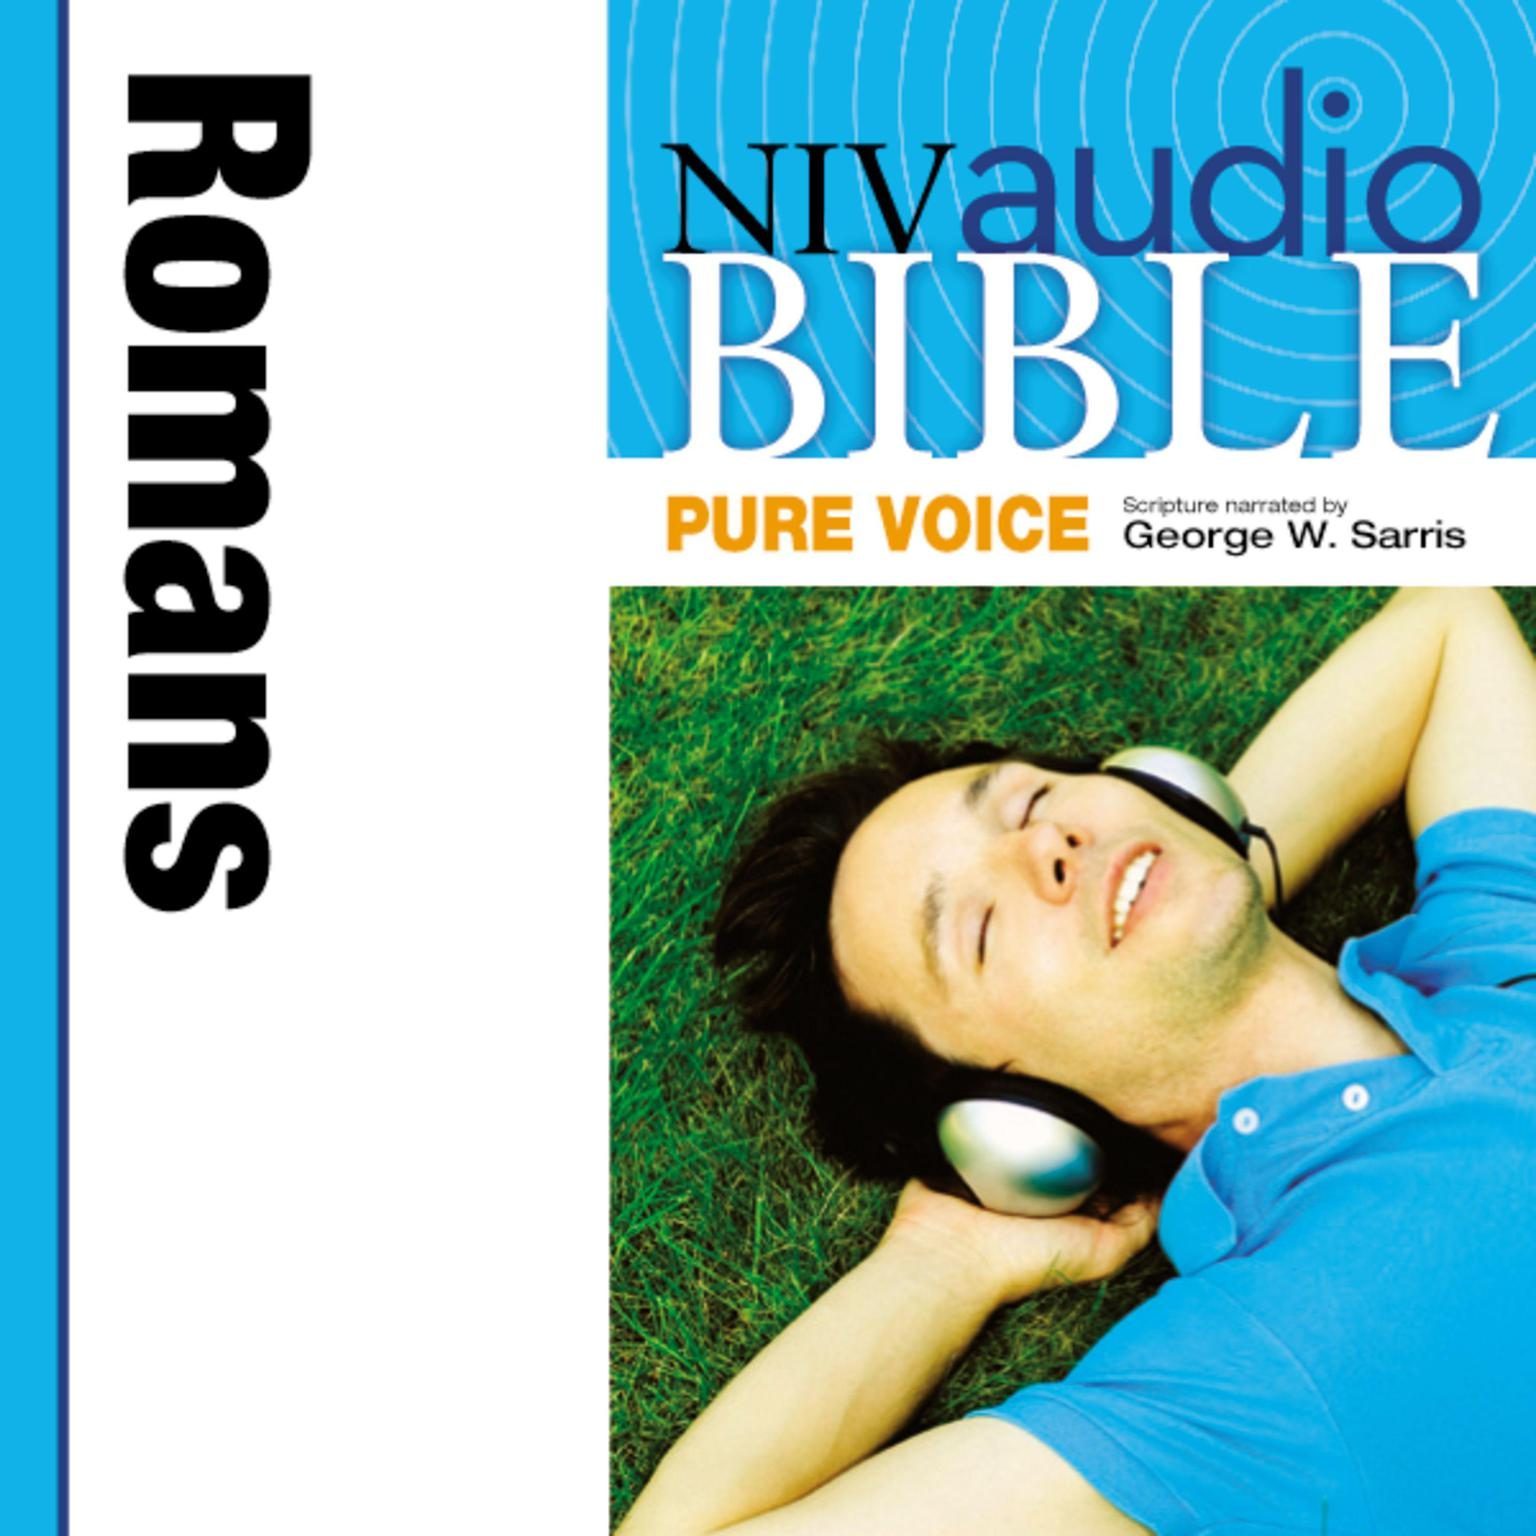 Printable NIV, Audio Bible, Pure Voice: Romans, Audio Download (Narrated by George W. Sarris) Audiobook Cover Art